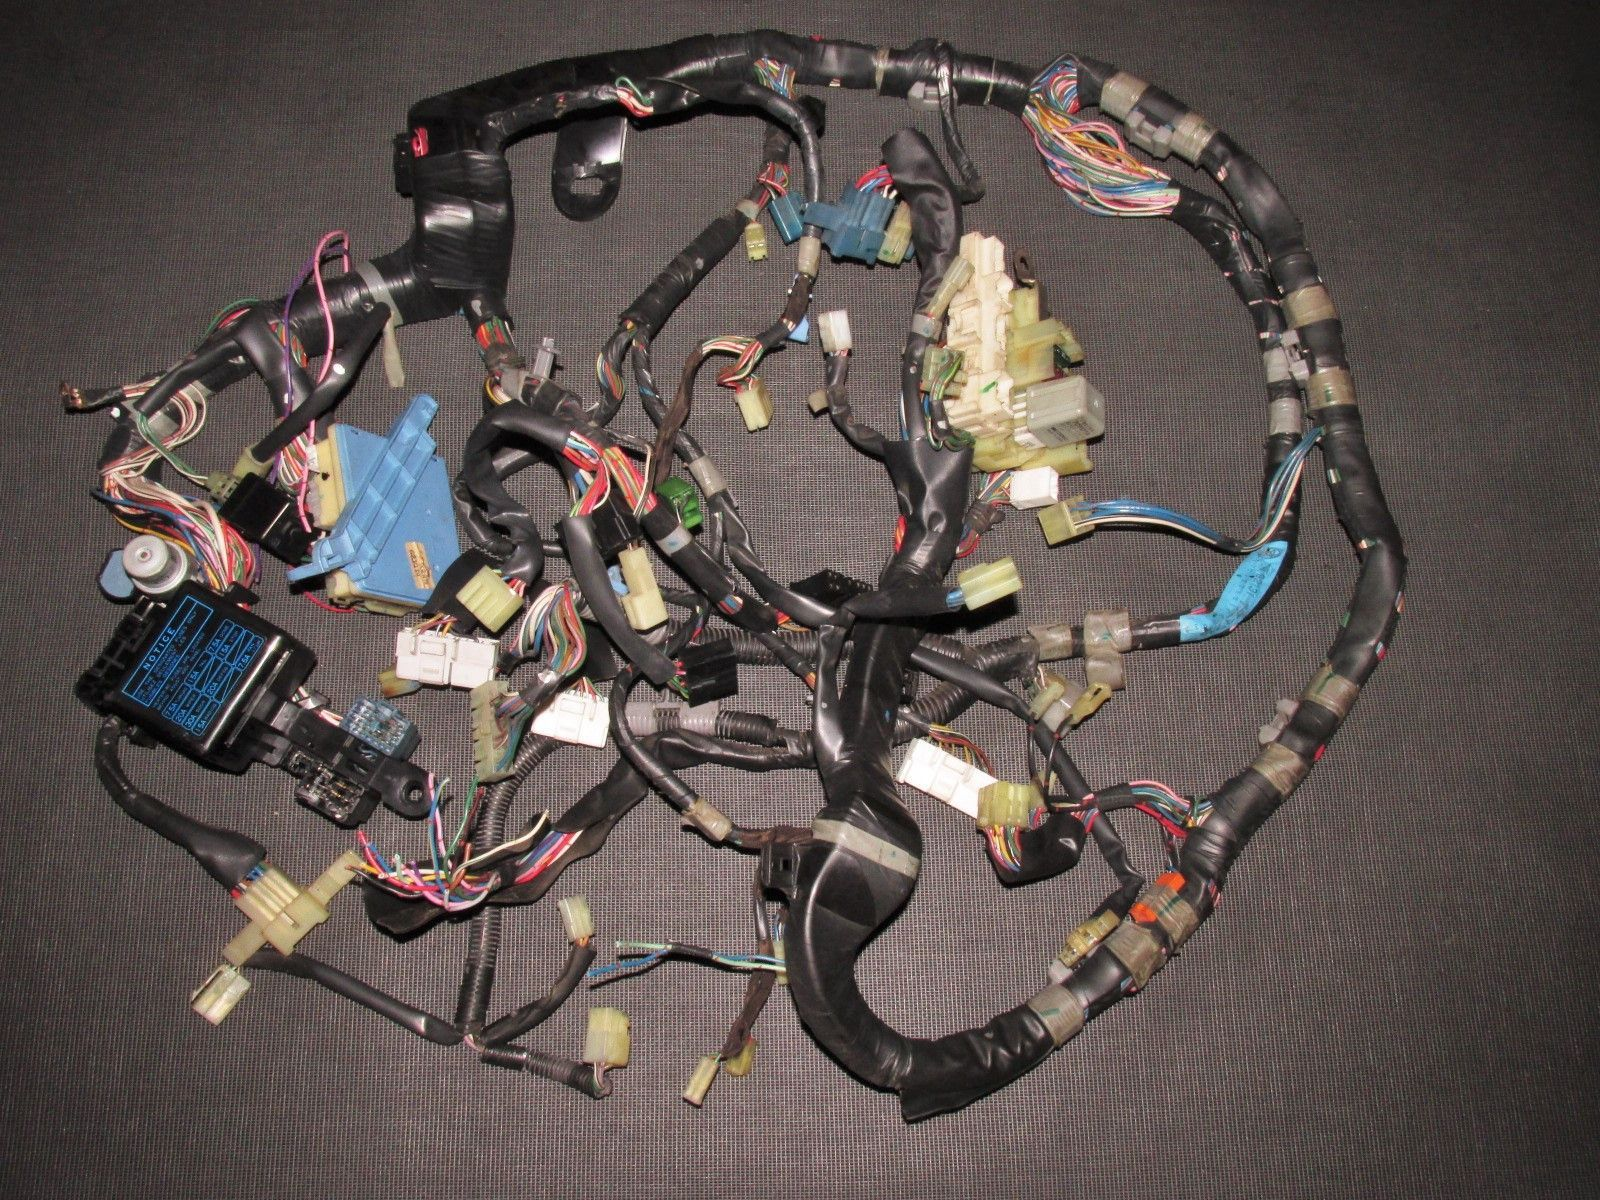 mr2 wiring harness wiring diagram fascinating 1991 mr2 wiring harness [ 1600 x 1200 Pixel ]